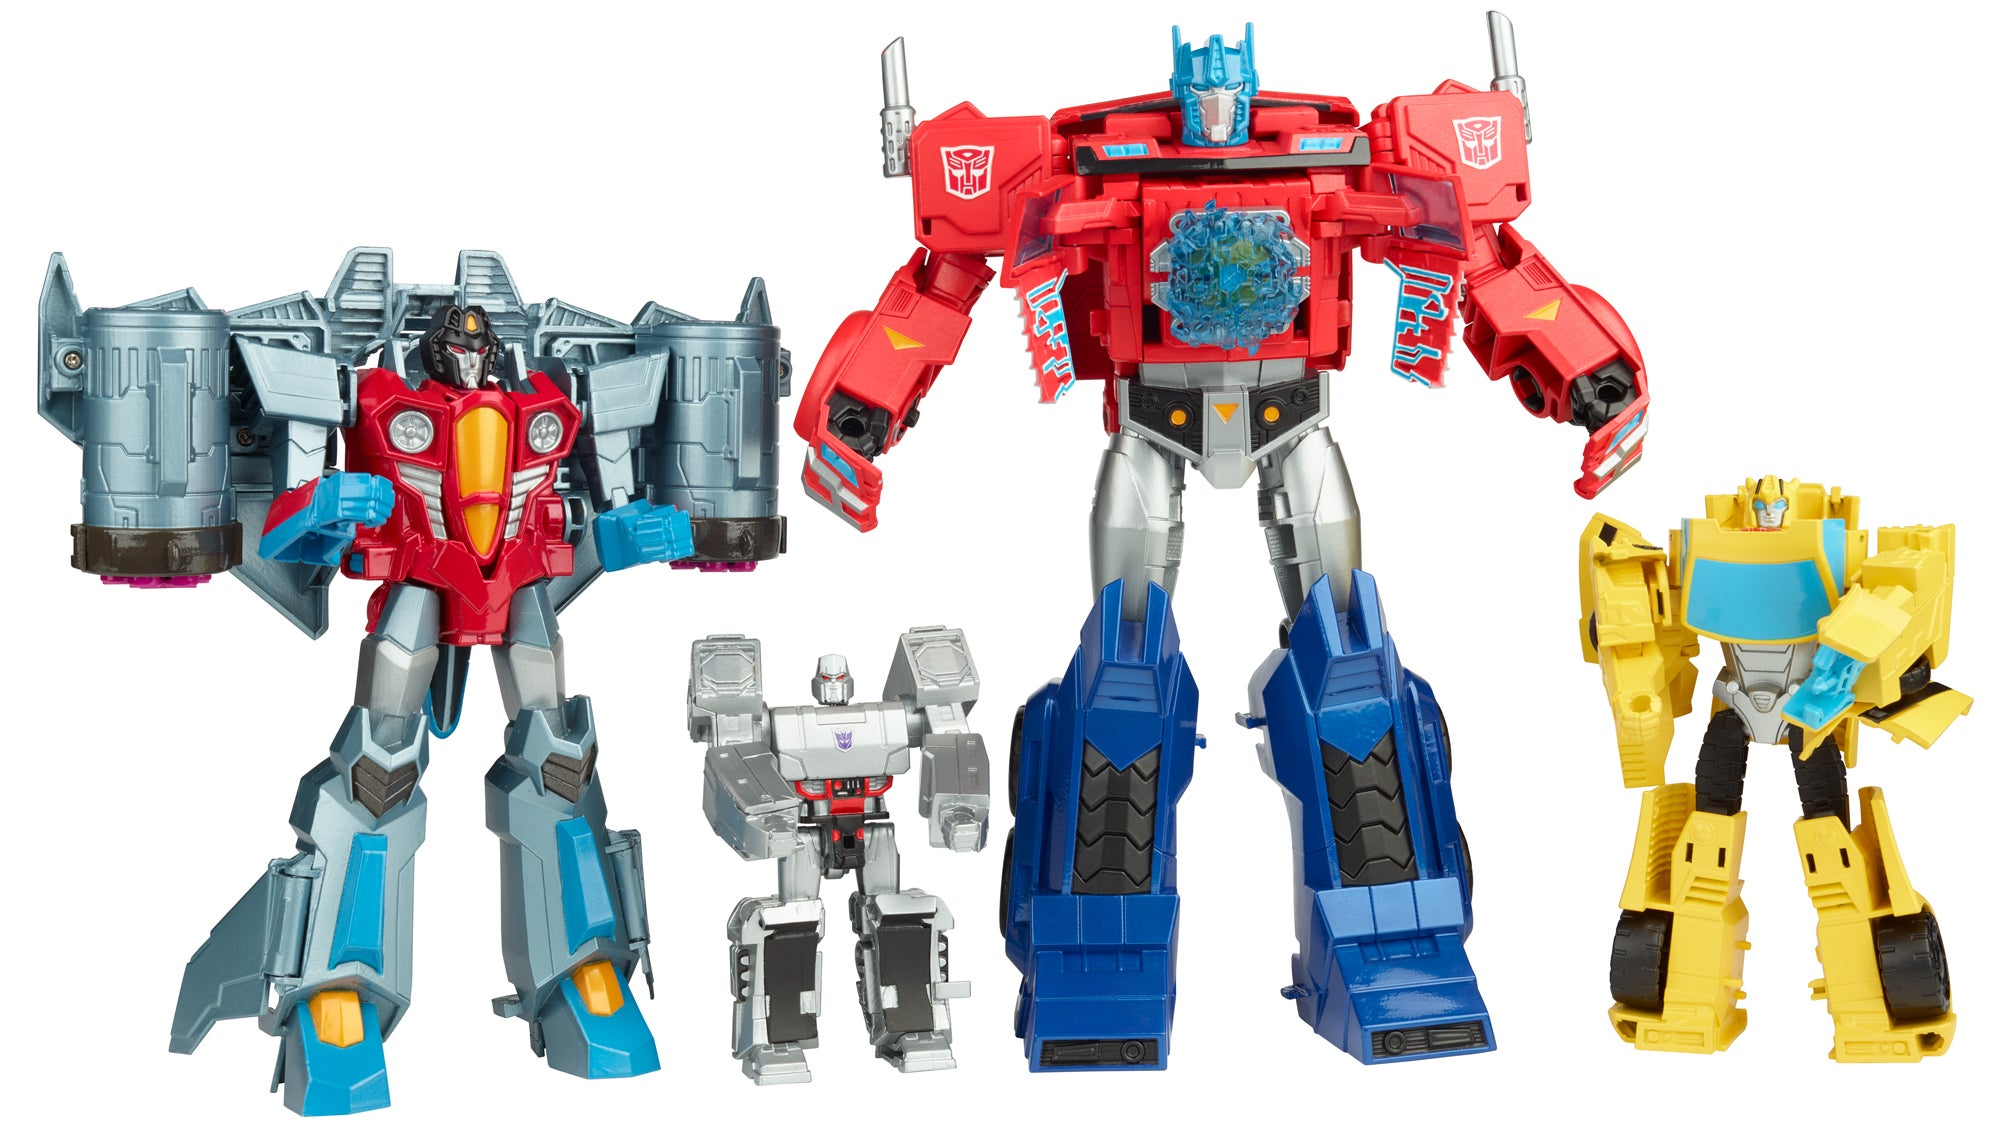 These New Transformers Cyberverse Figures Are Fantastic Callbacks To The Original '80s Toys